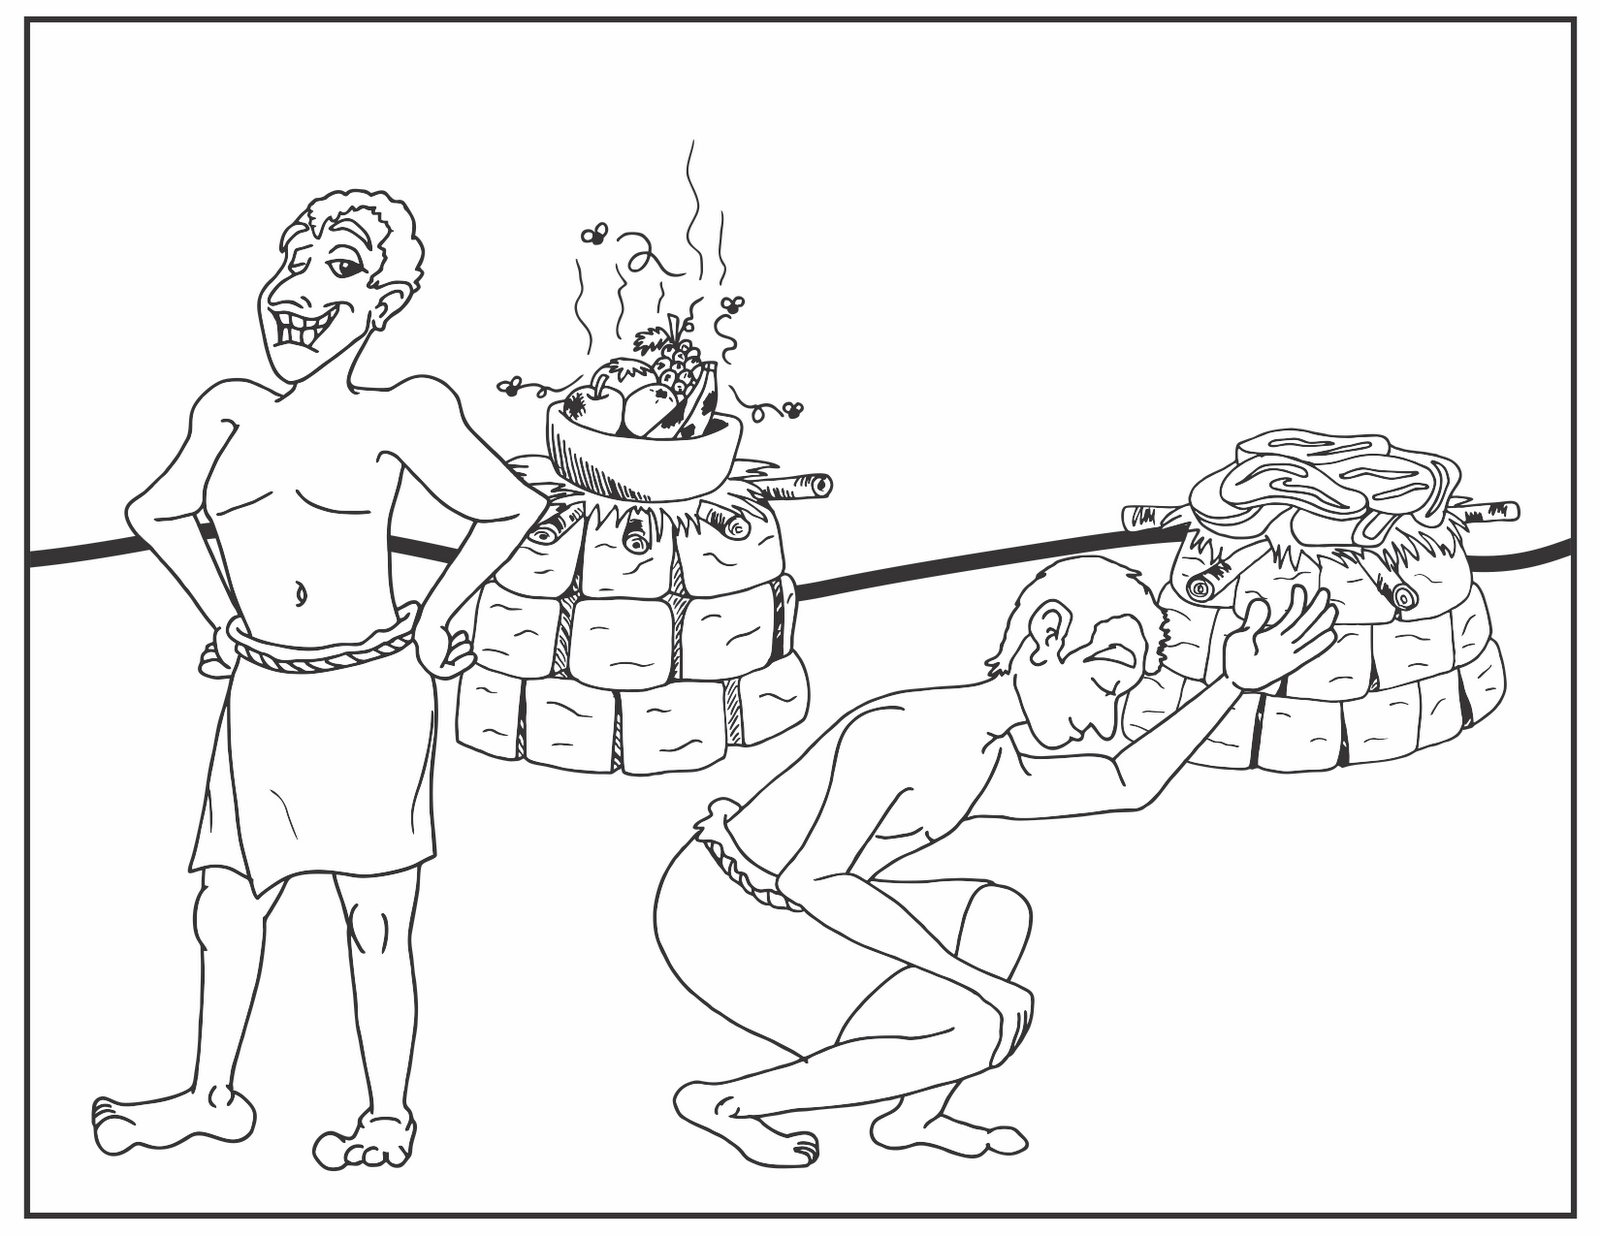 Cain And Abel Bible Coloring Pages Sketch Coloring Page